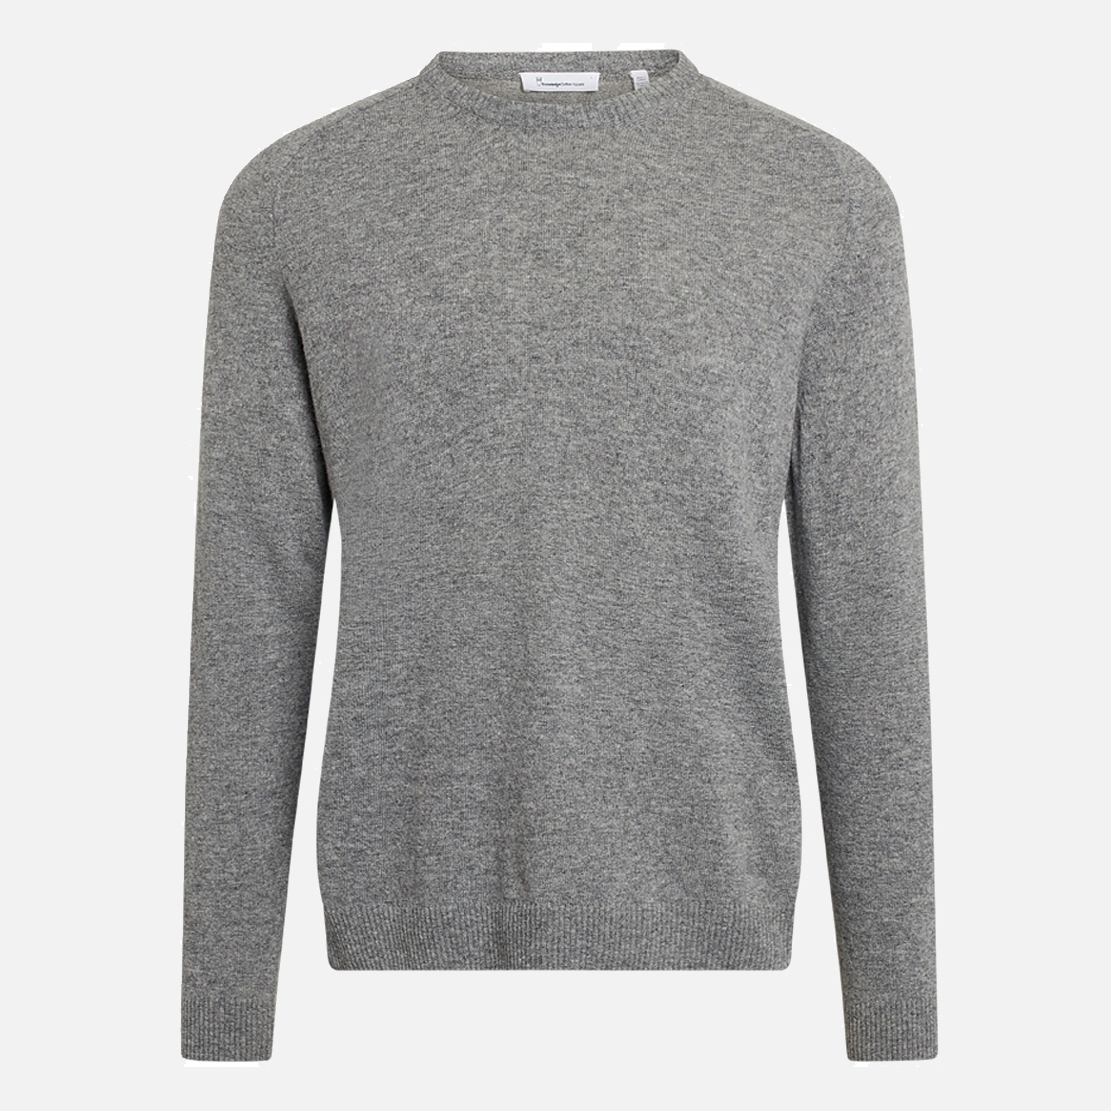 Stickad tröja i 100% ekologisk lammull. Field O-Neck Knowledge Cotton Apparel.